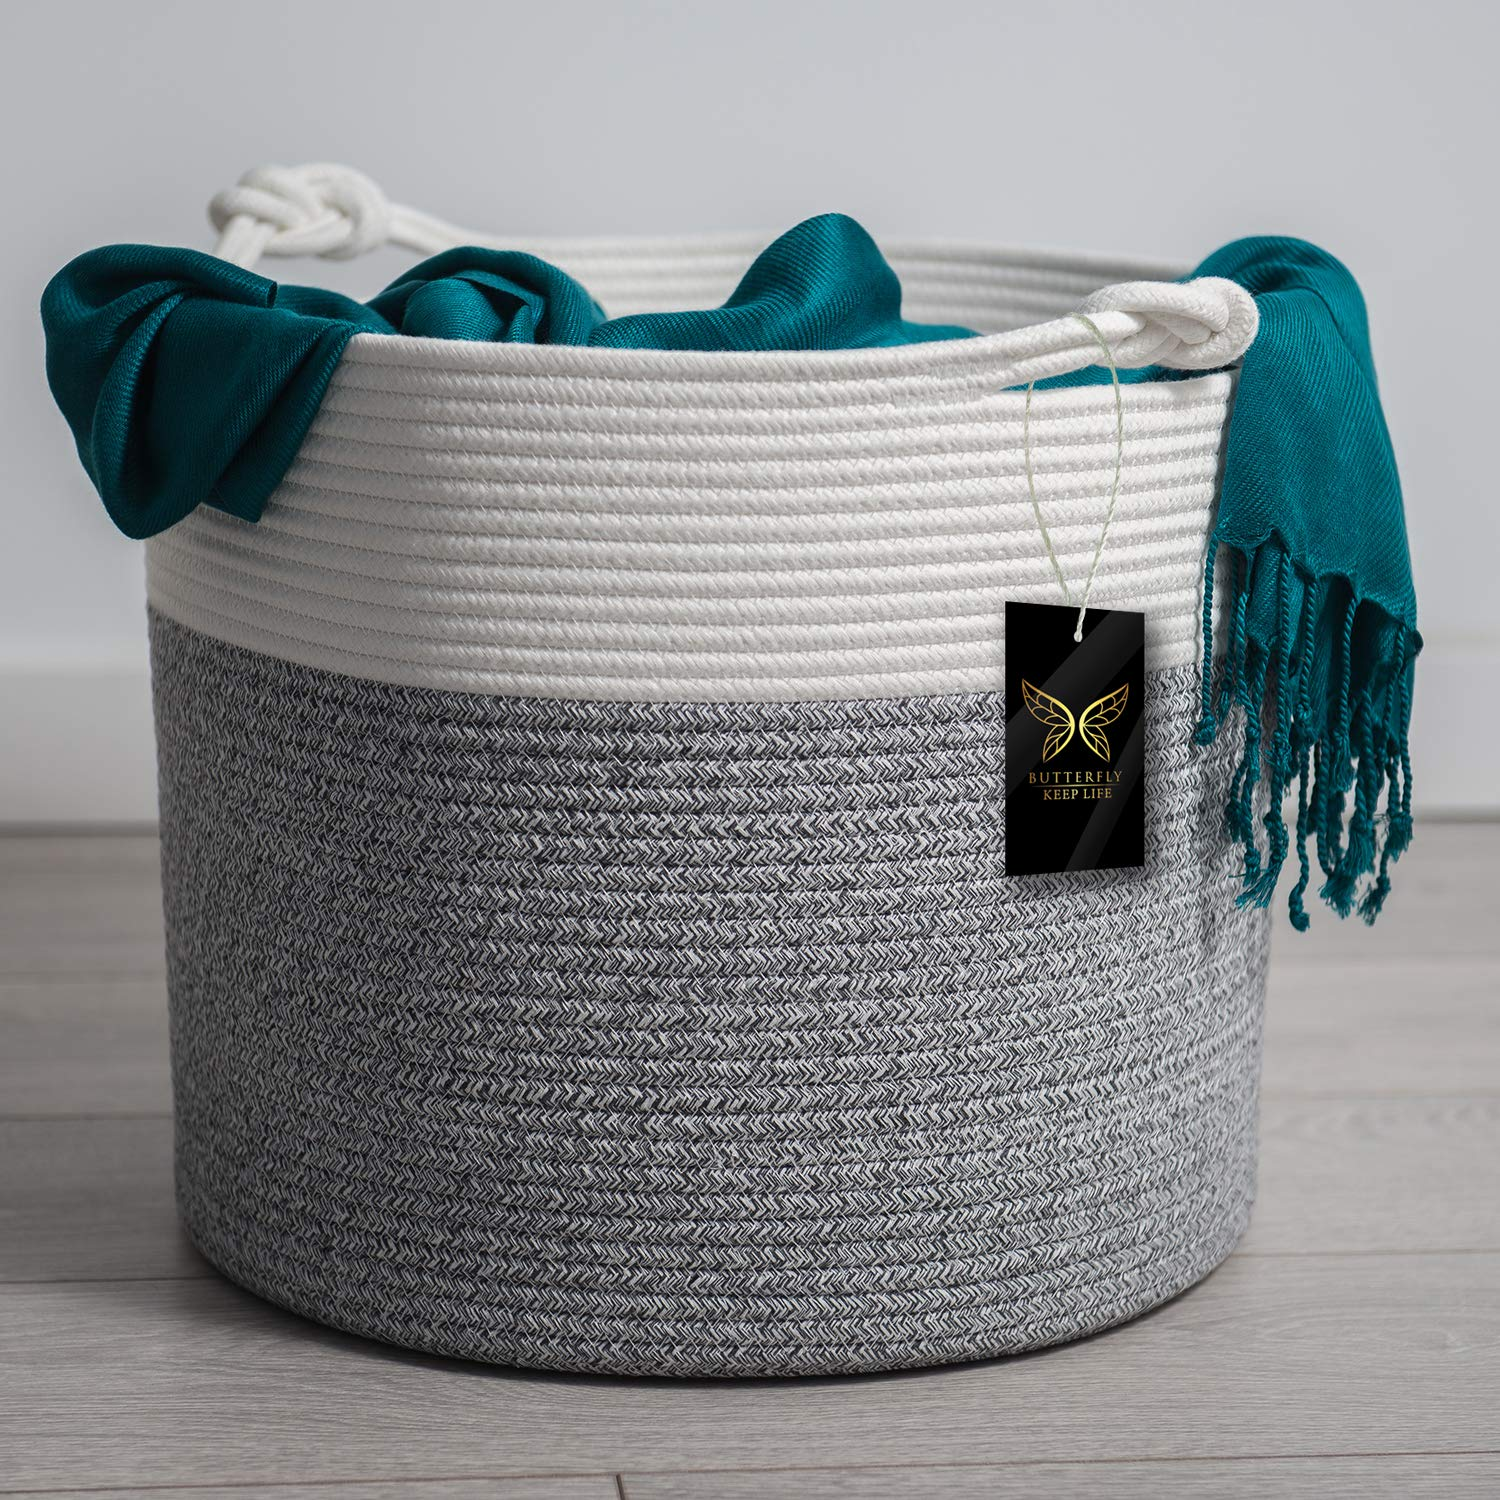 Large Cotton Rope Basket | Blanket Basket for Living Room | Woven Basket Use for Throw Pillow, Clothing, Toys Storage | Stylish Nursery Organizer | Baby Laundry Basket | Home Decor Addition